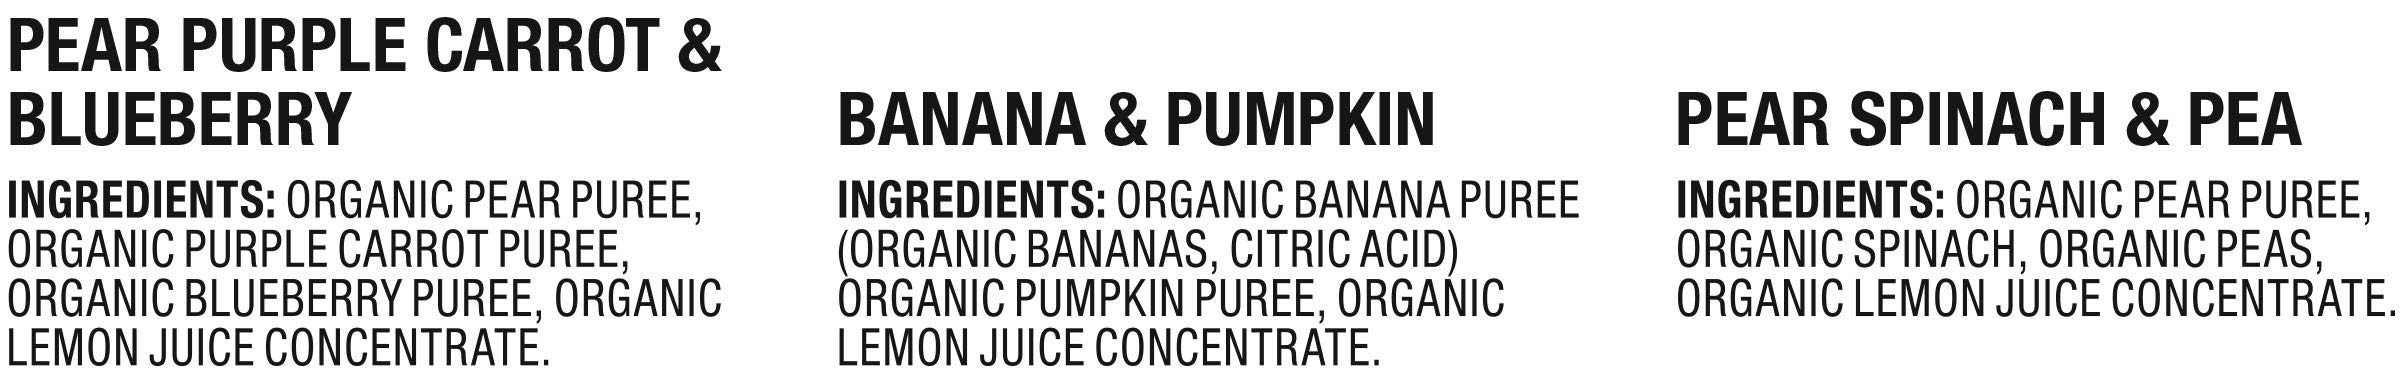 Plum Organics Stage 2, Organic Baby Food, Fruit and Veggie Variety Pack, 4 ounce pouch, Pack of 18 (Packaging May Vary) by Plum Organics (Image #3)